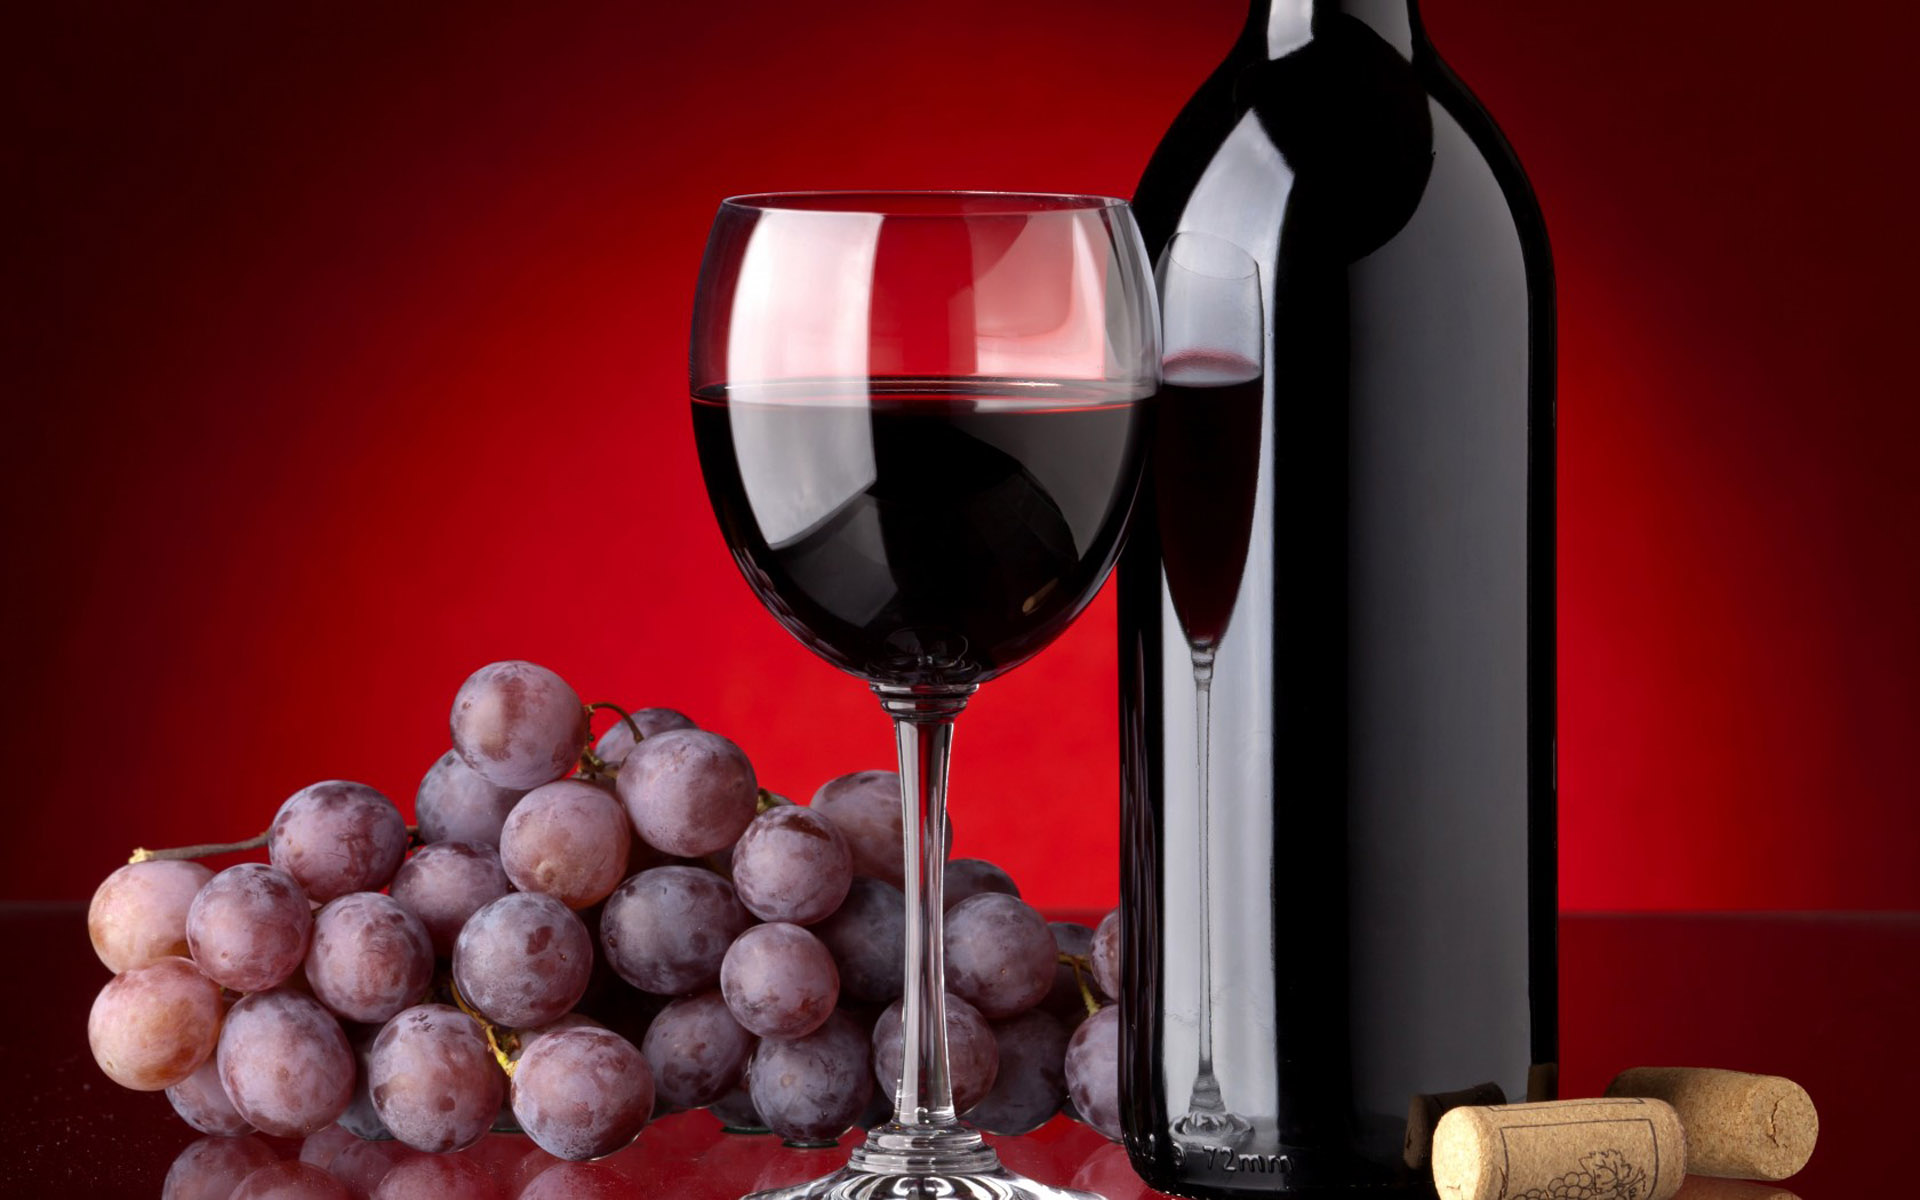 arabuko_marketing_gastronómico_vinos_carta_ventas_001